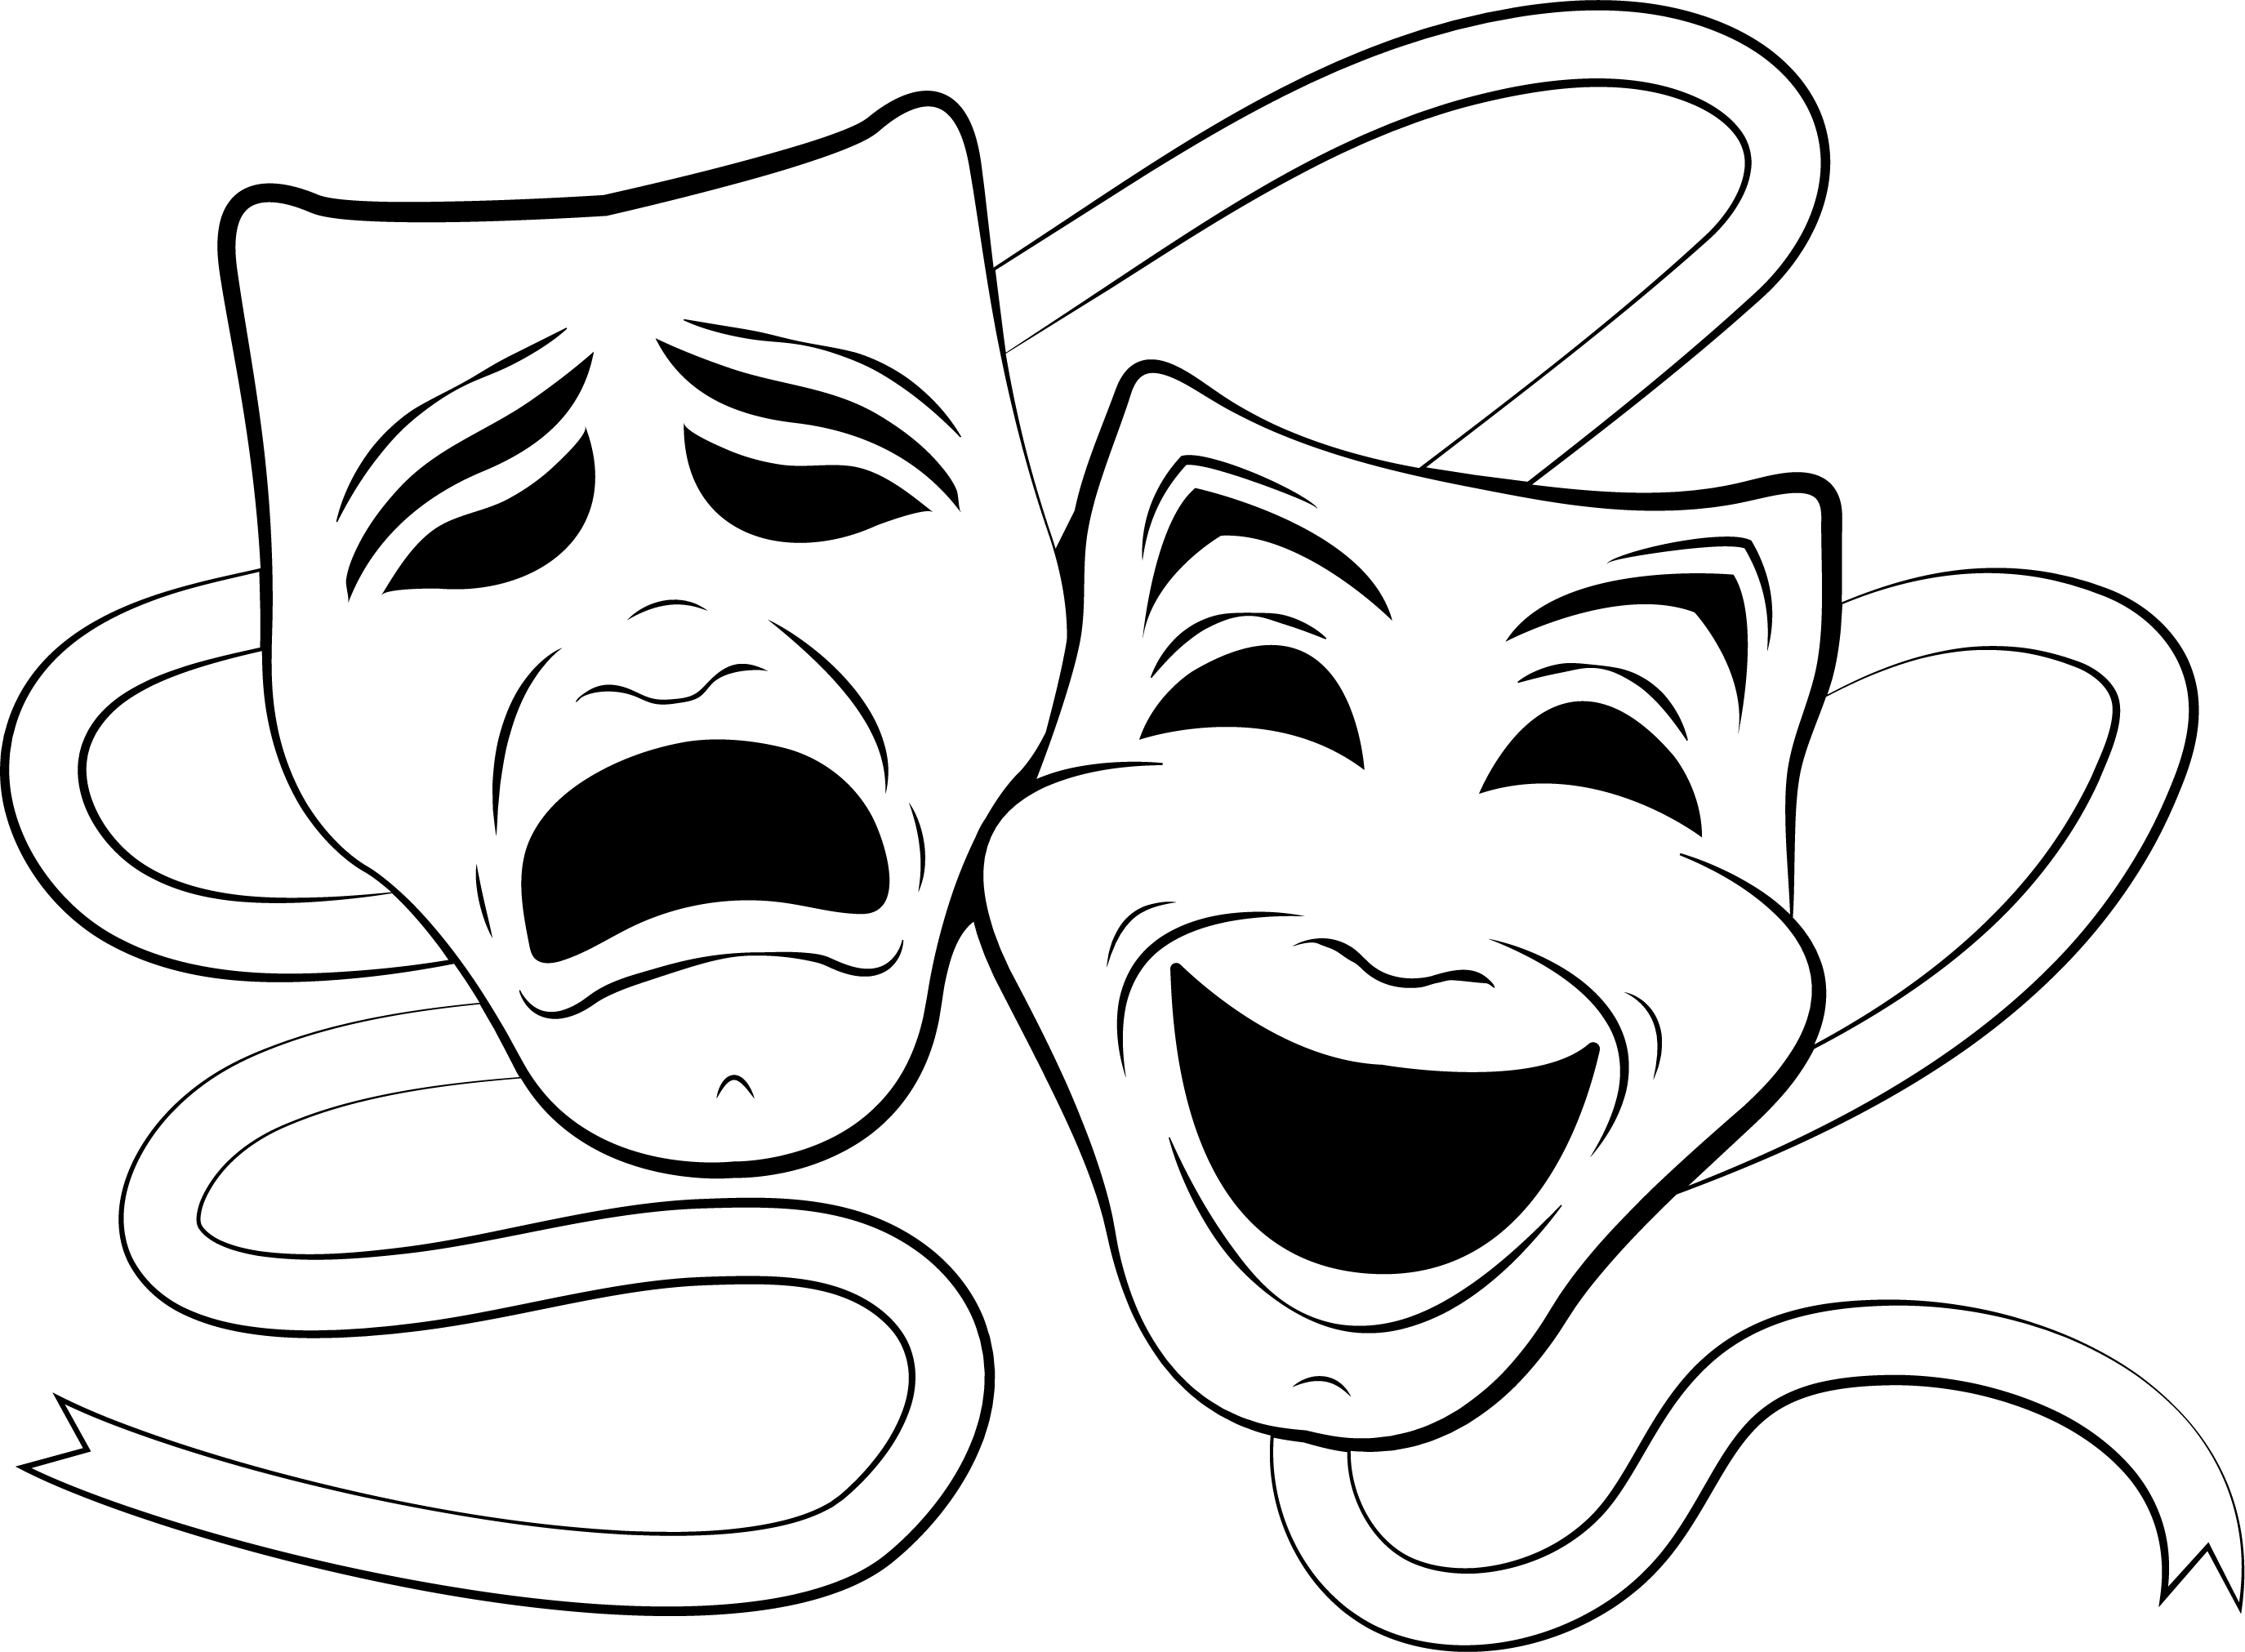 Mask clipart musical theatre. Image result for masks